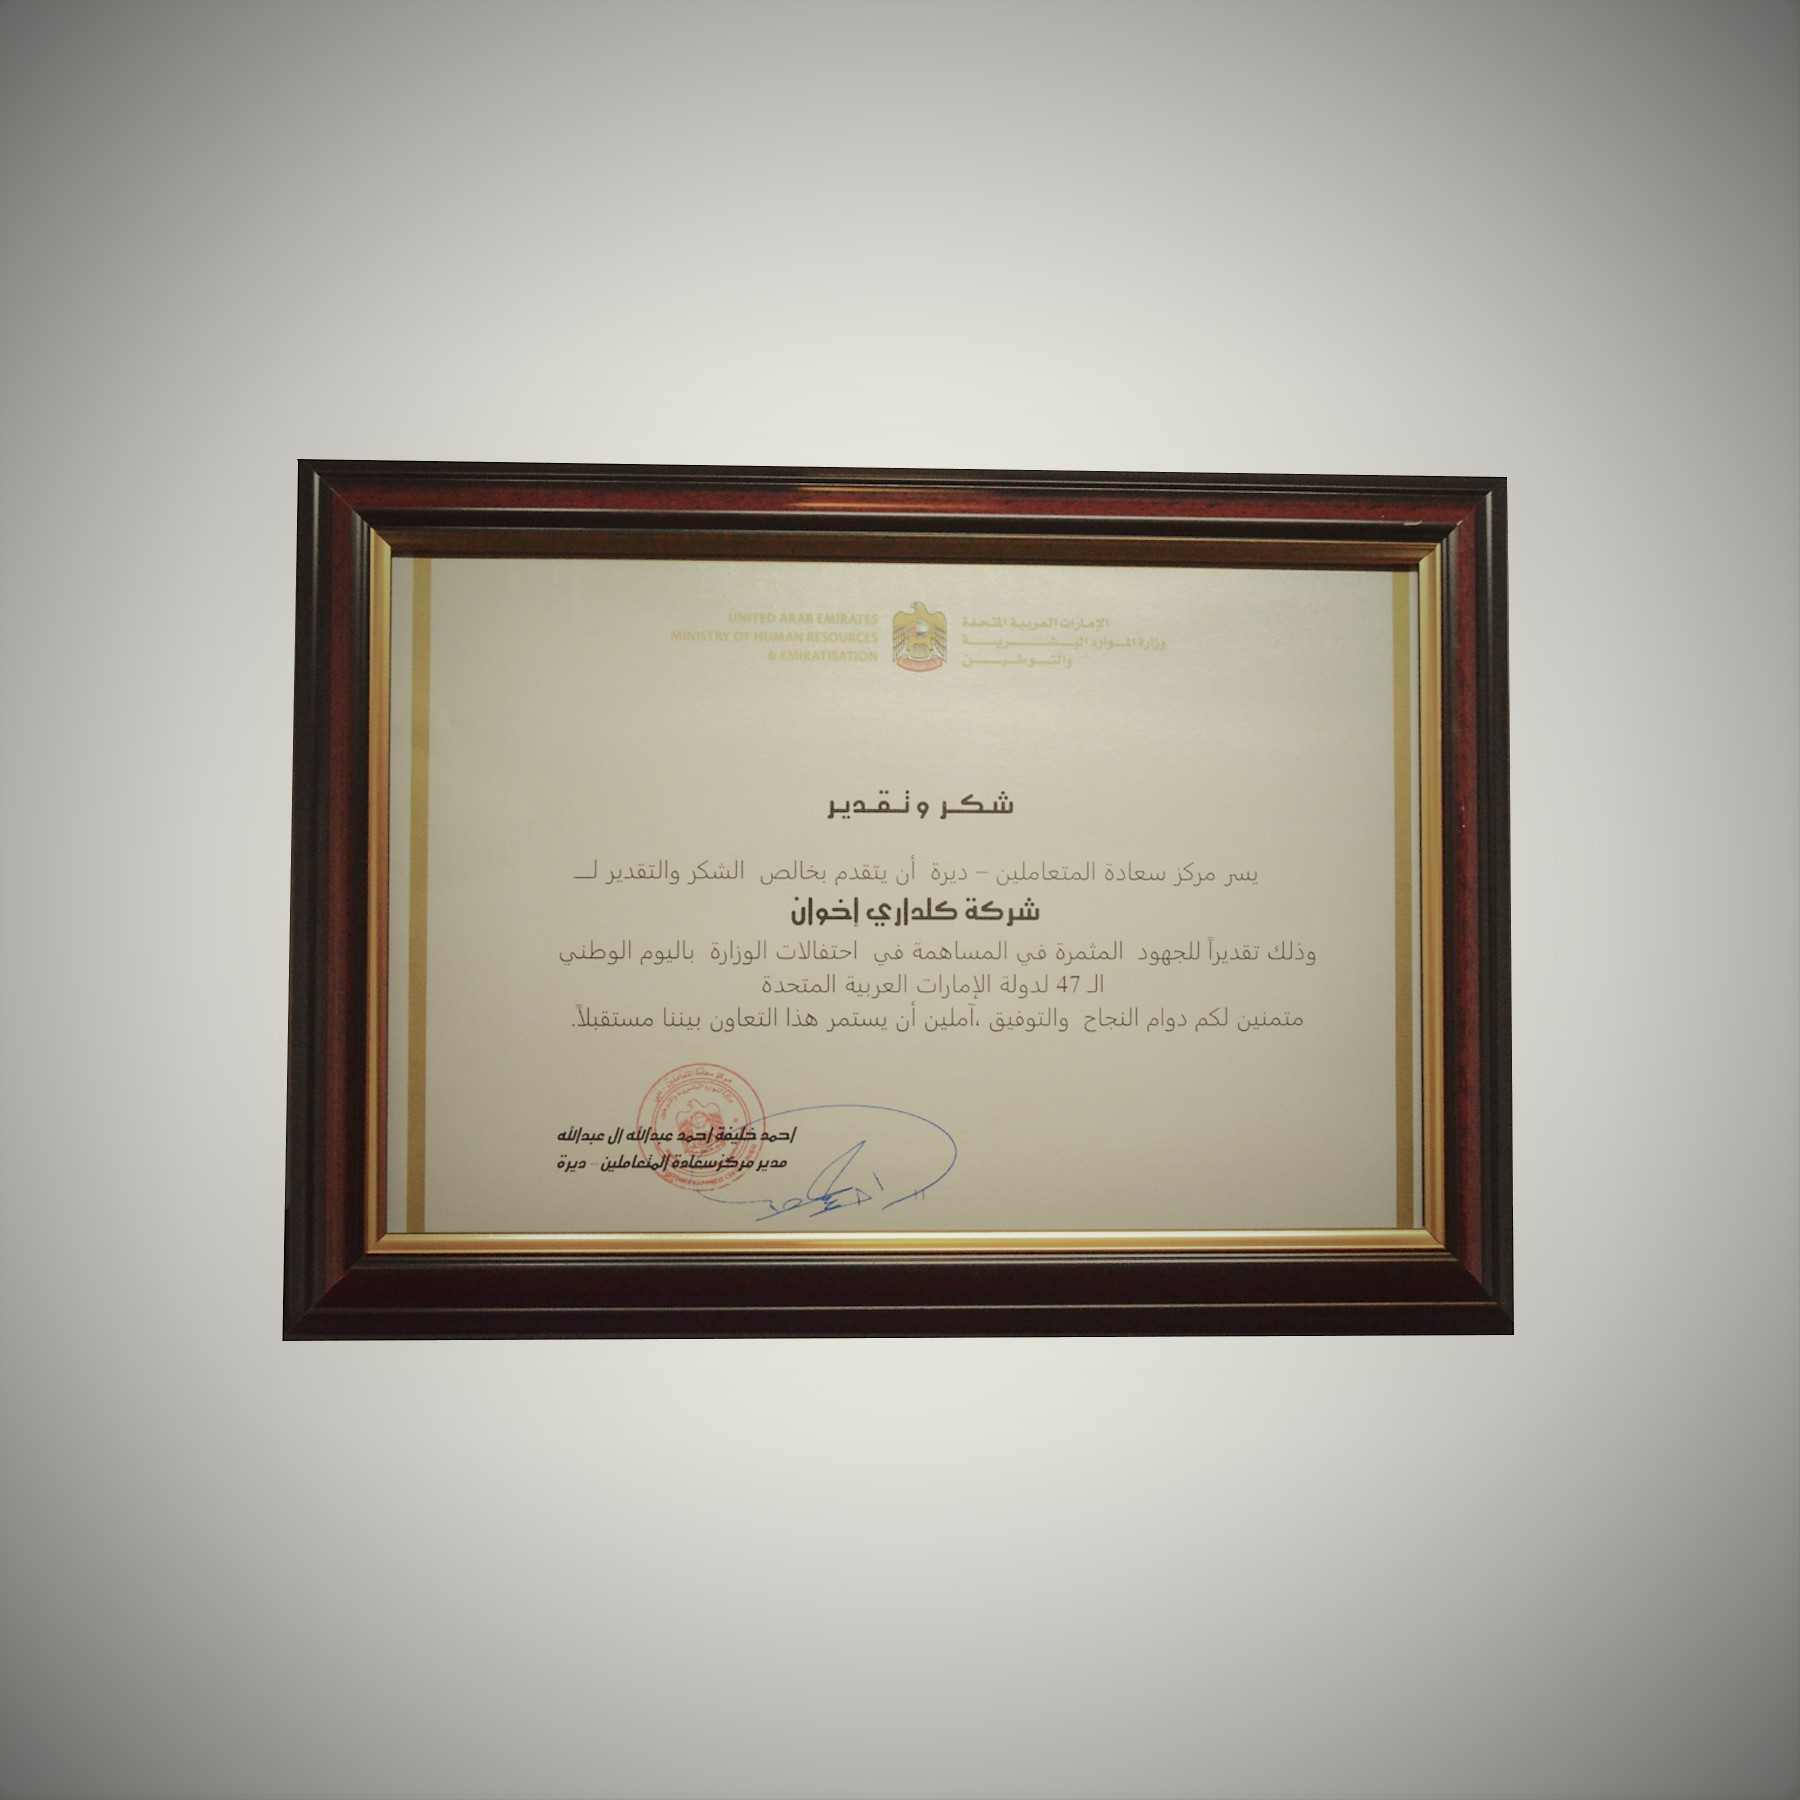 UAE Ministry of Human Resources & Emiratisation